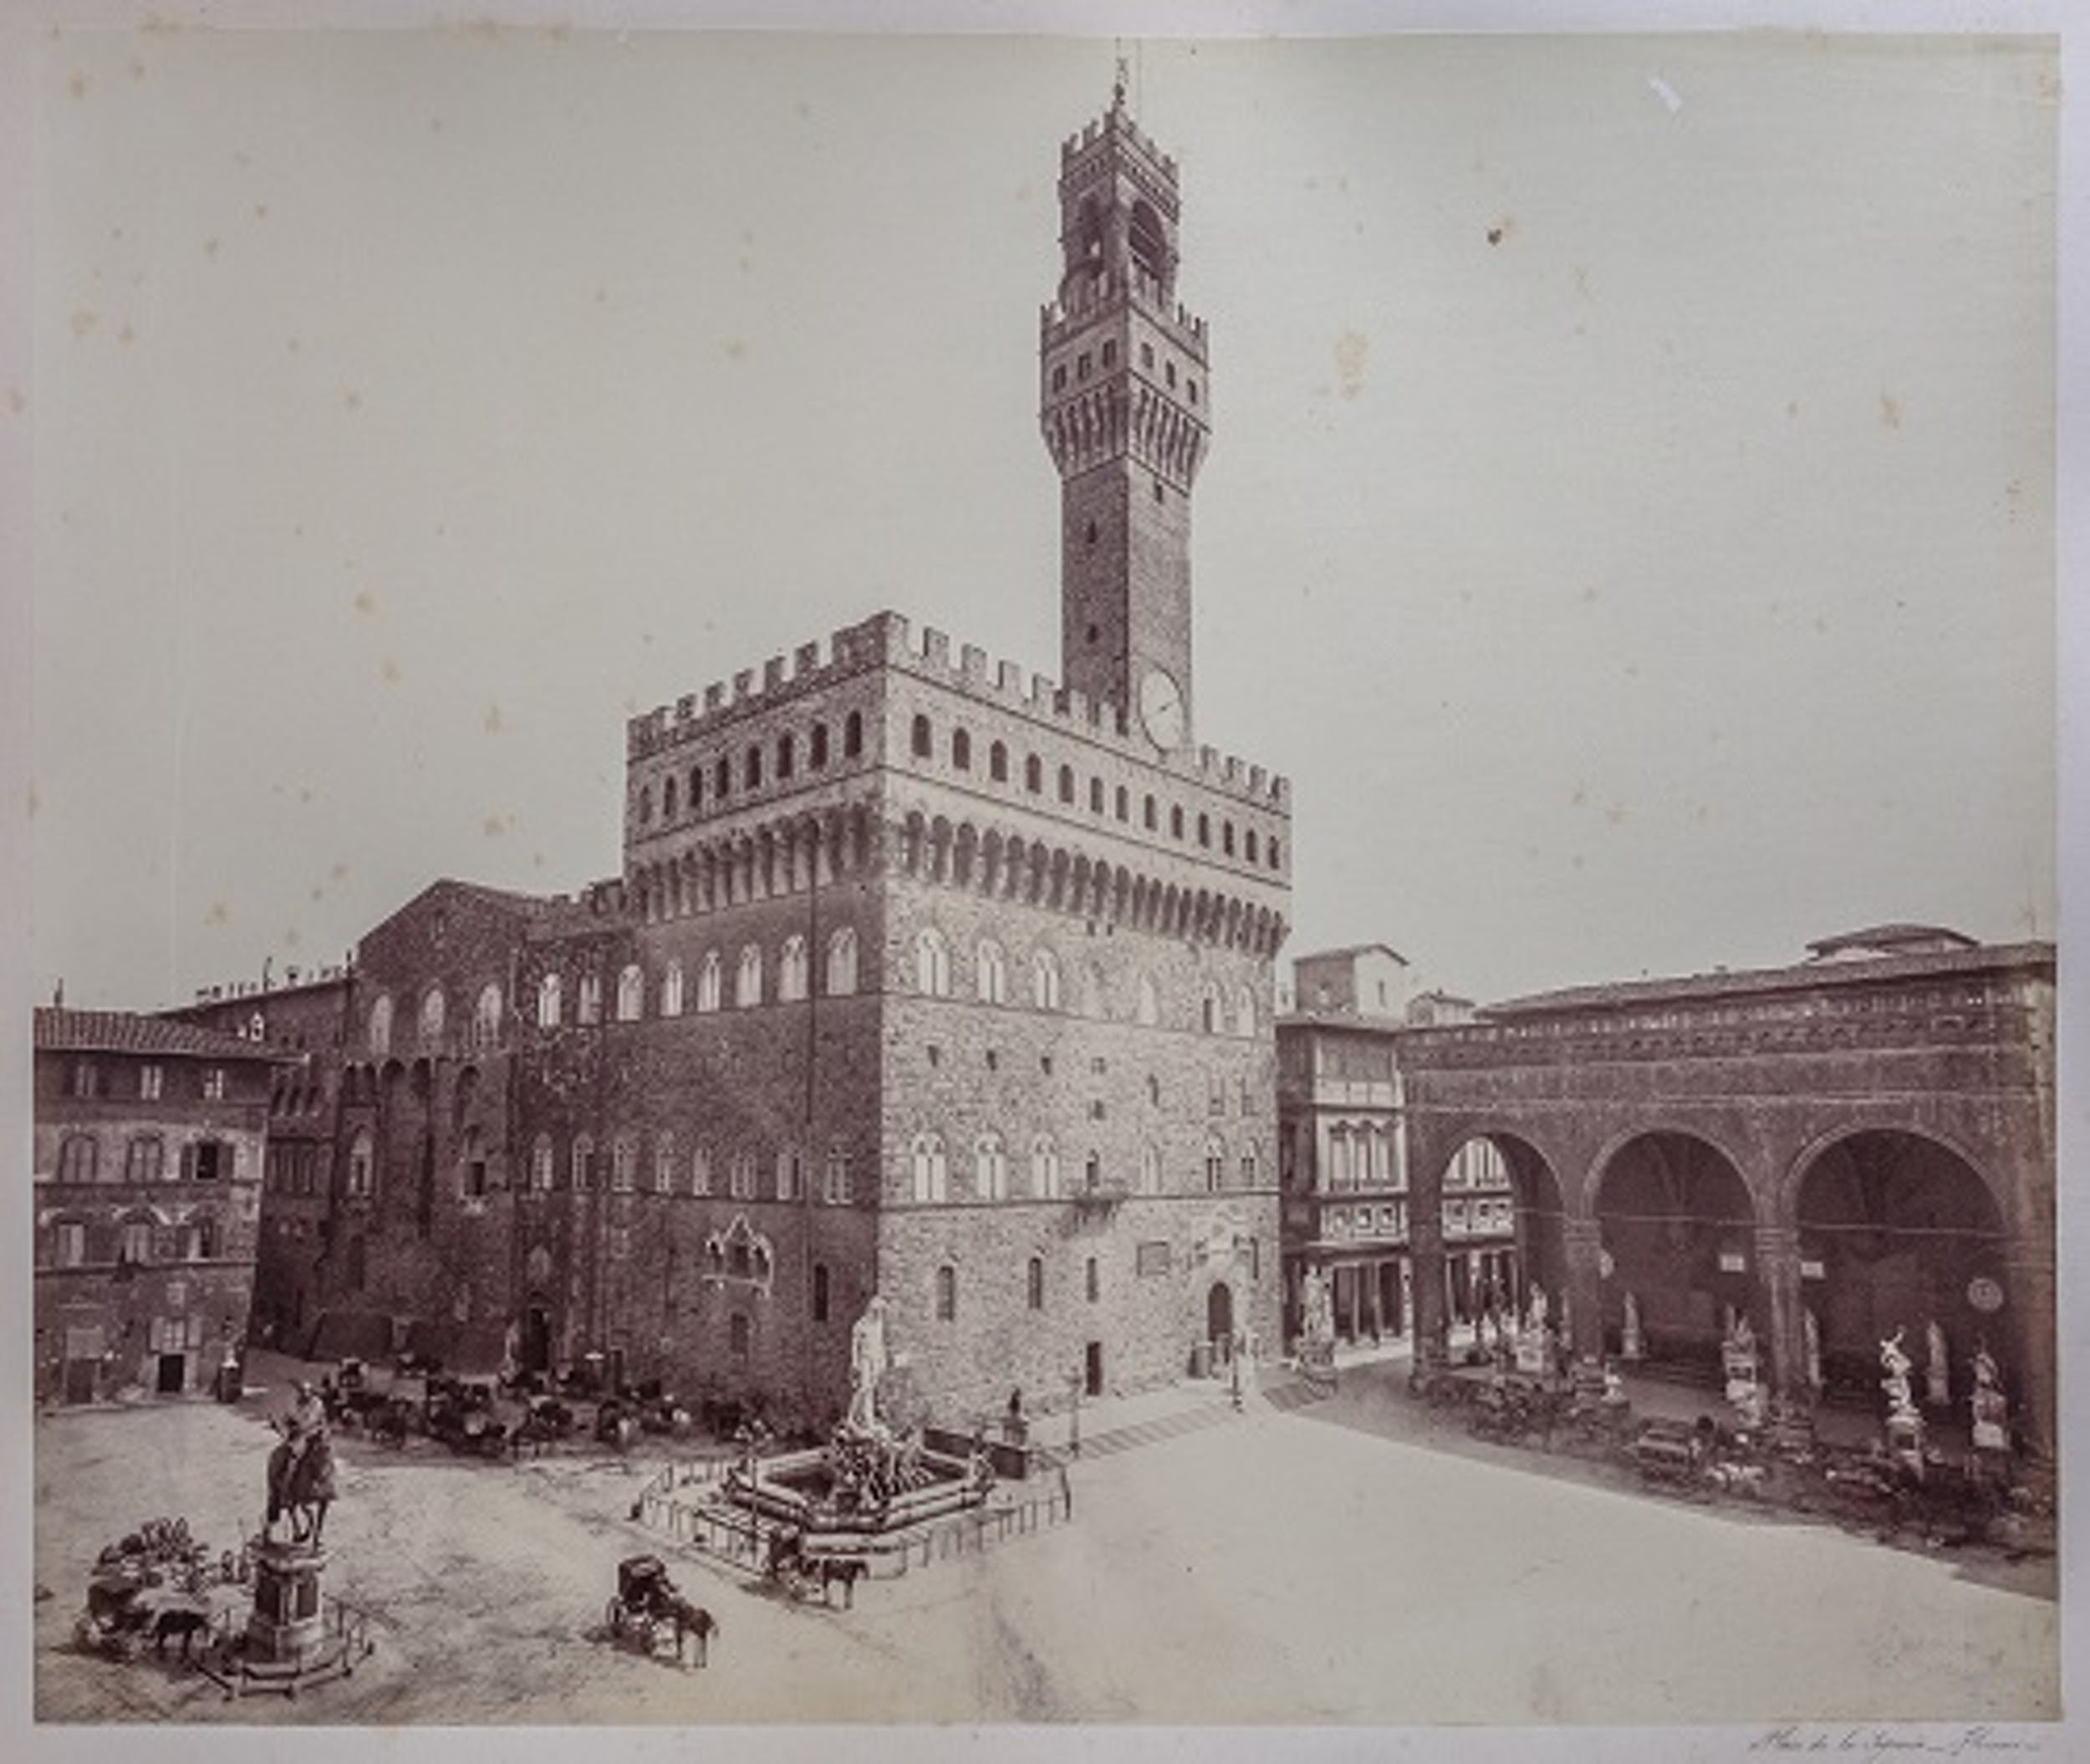 fig. 1 Omnibus a cavalli fotografati in Piazza della Signoria nel periodo di Firenze capitale (particolare, tratto da Alinari 1865-1870, tav. [3]) - Horsedrawn omnibuses photographed in Piazza della Signoria in the period when Florence was capital of Italy (detail, from: Alinari 1865-1870?, tab. [3]).